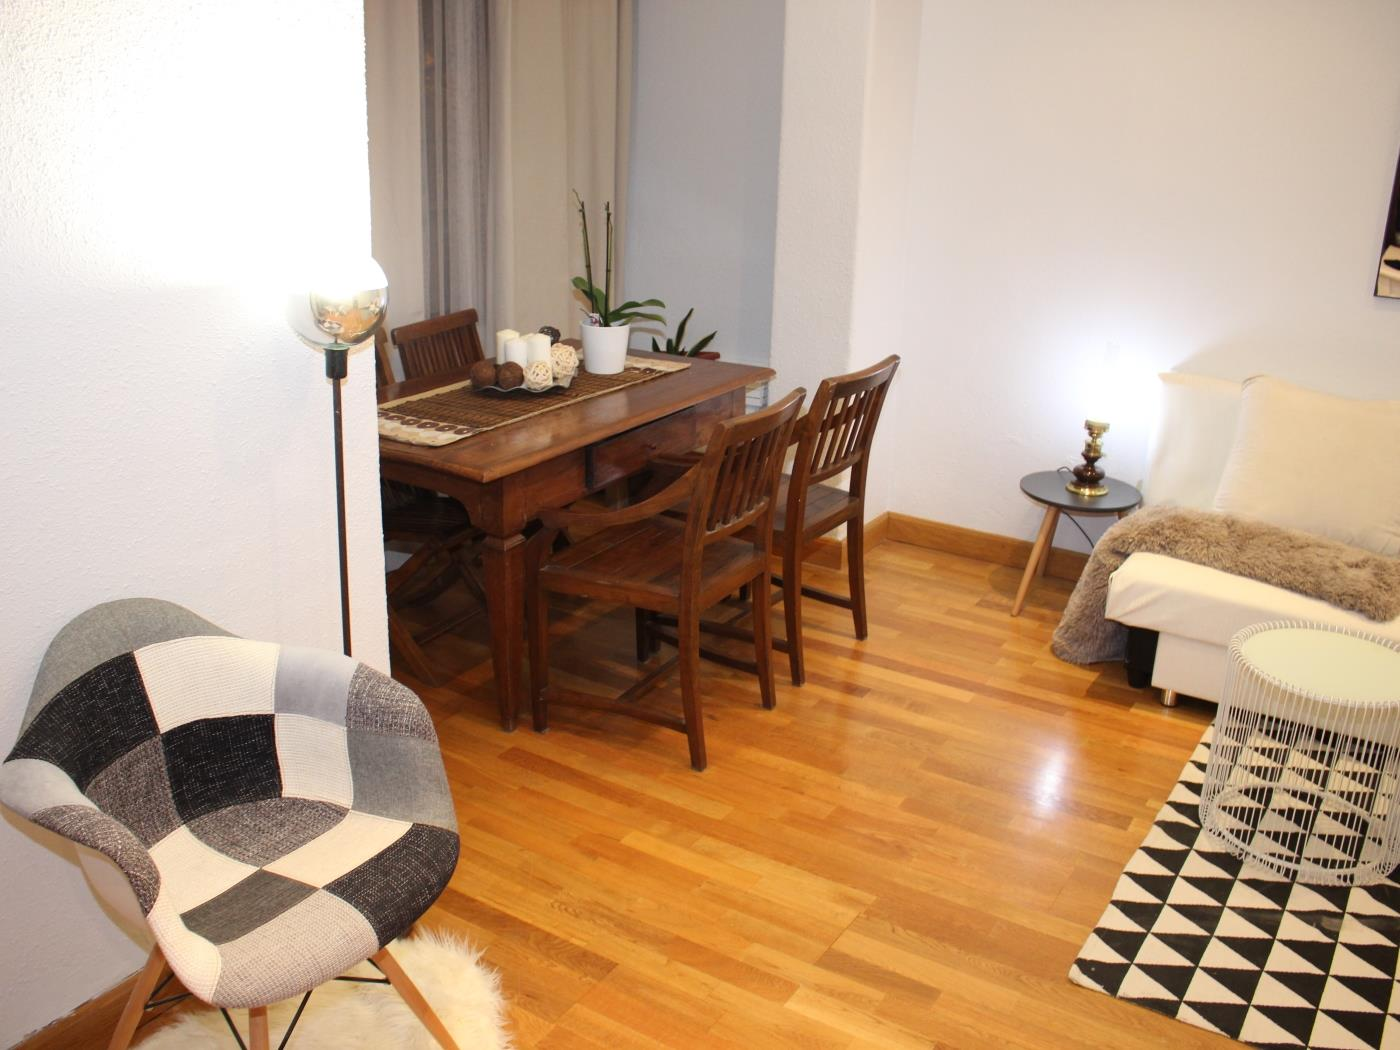 Cozy apartment for groups located in the city centre in the Sagrada Familia - My Space BARCELONA Apartments